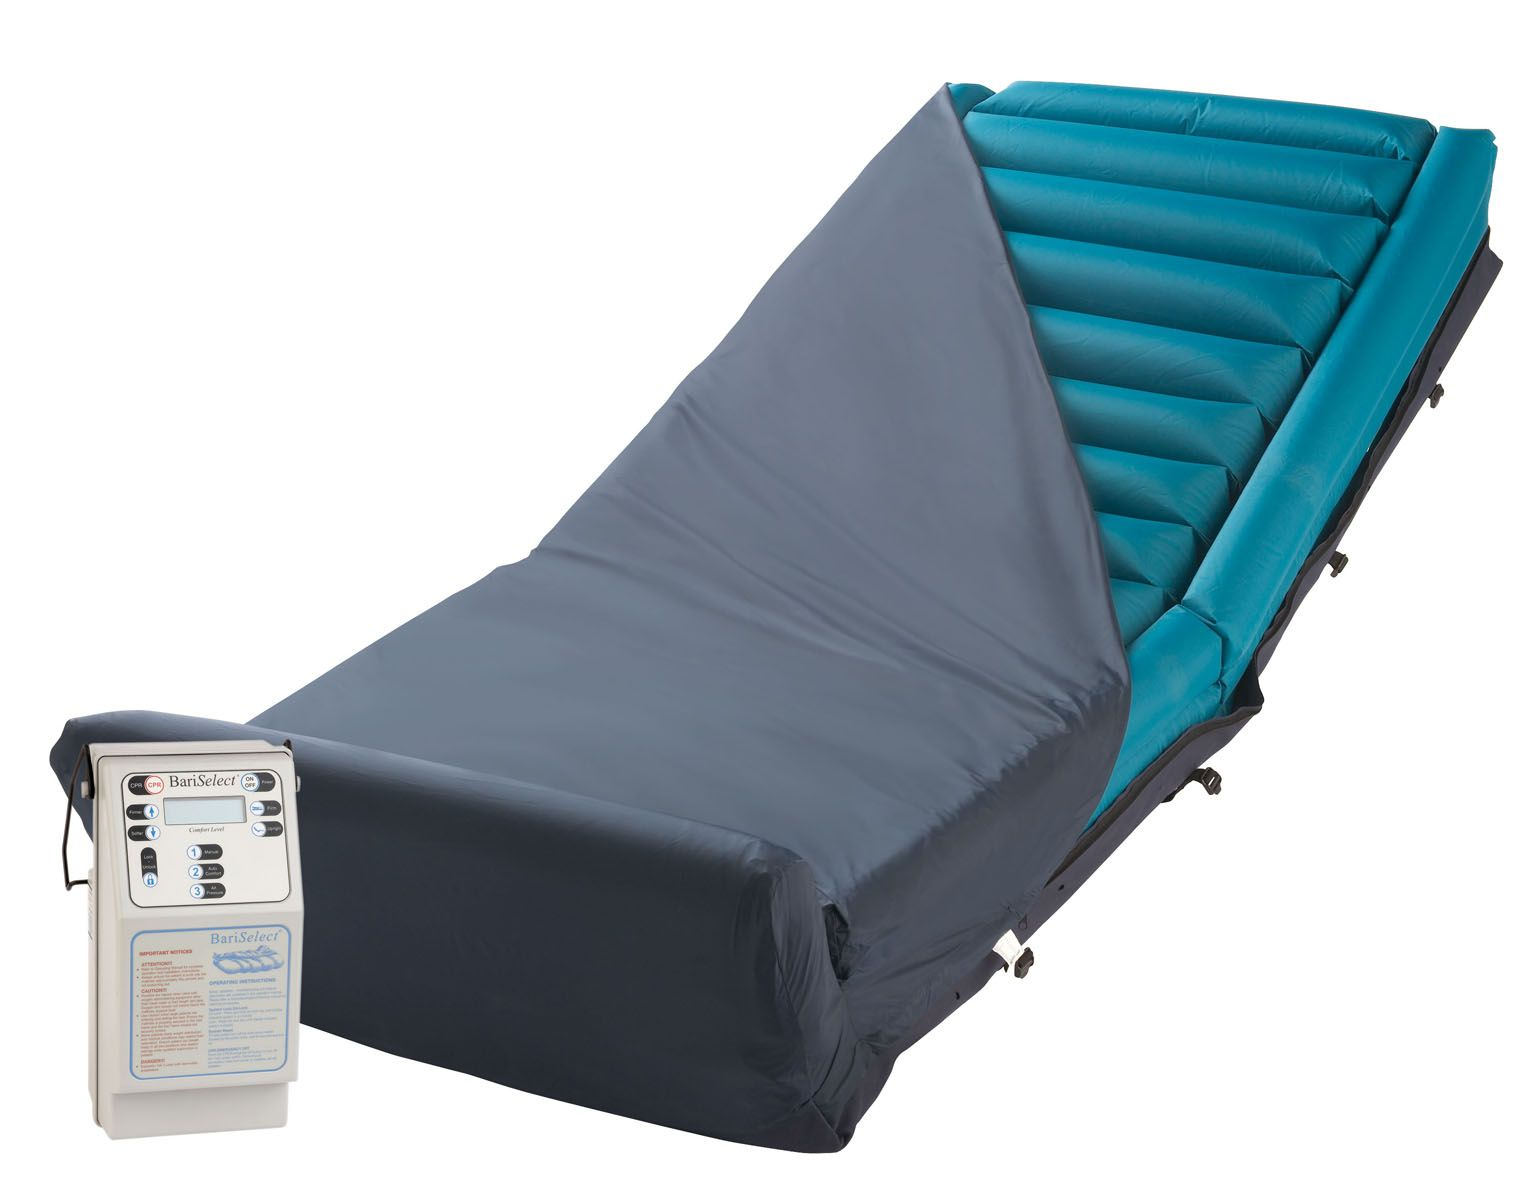 Medline MedTech Bariatric Mattress - True Low Air Loss, Bariselect, 48X80X10, Each - Model MDT24B48